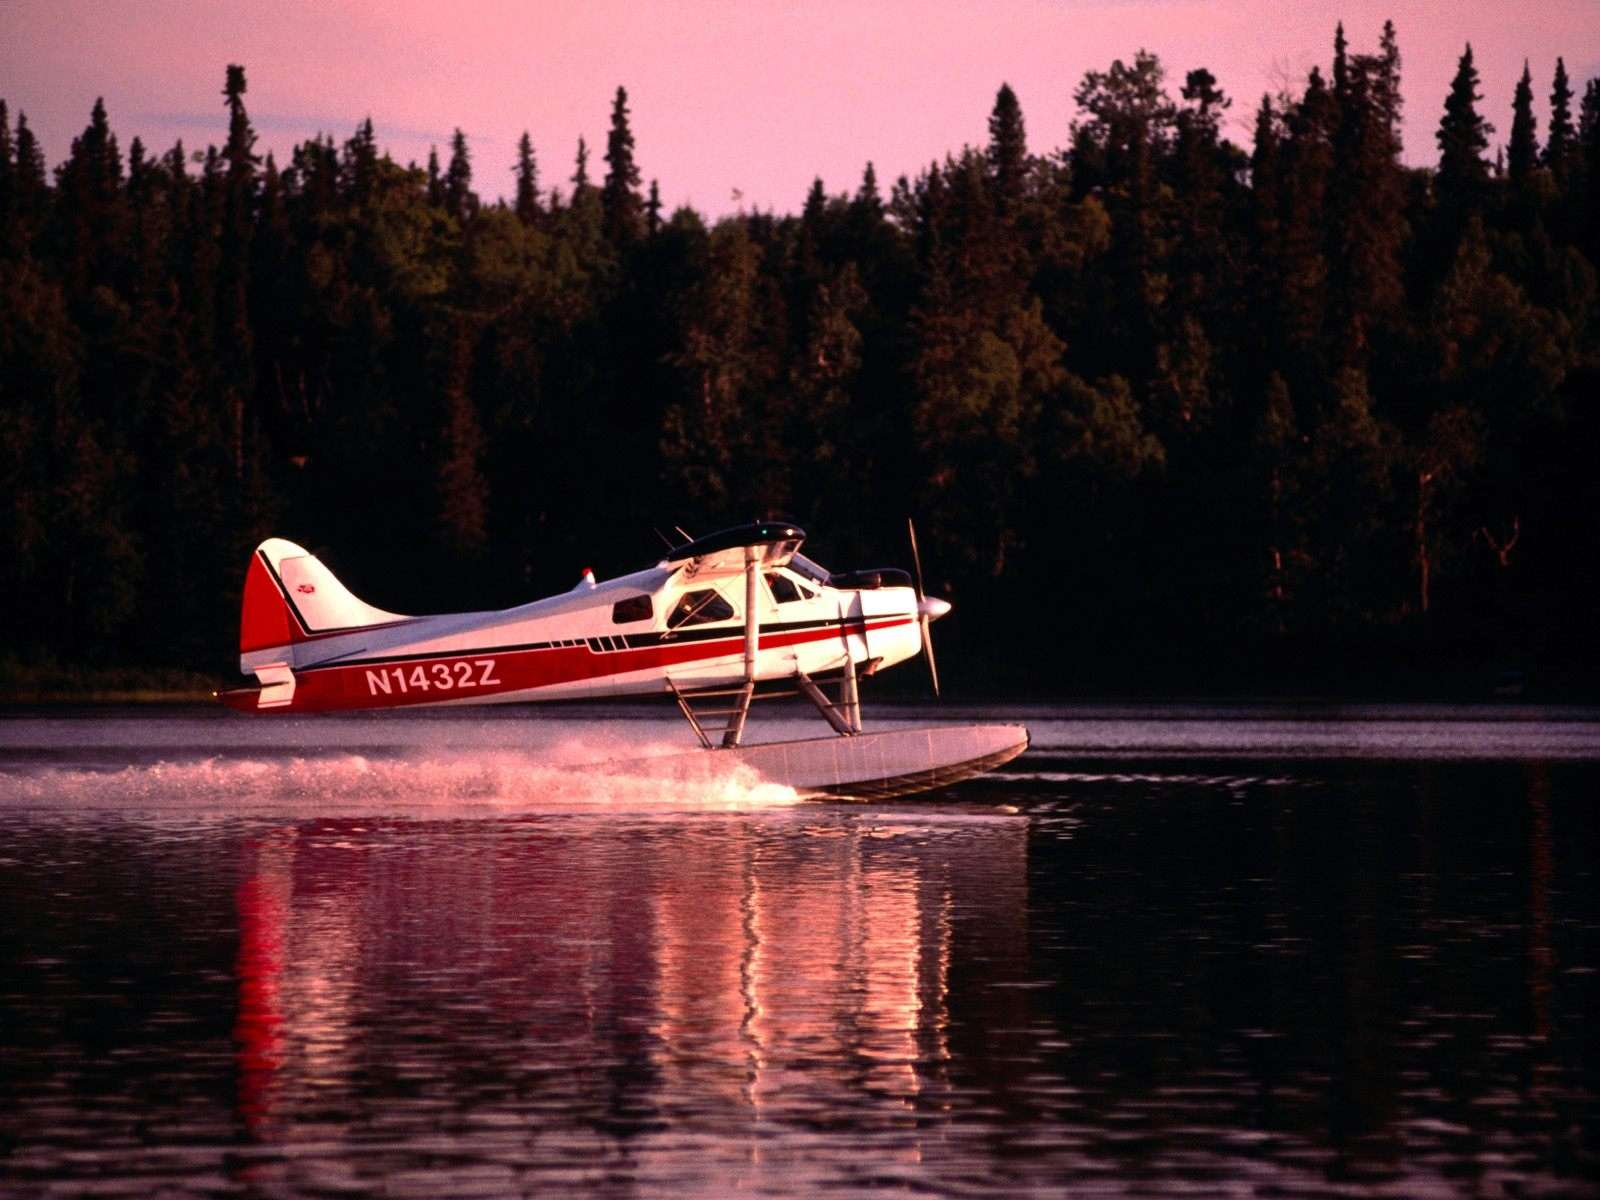 3d Motivational Wallpapers Go For Takeoff Dehaviland Beaver Aircraft Lake Hood Alaska